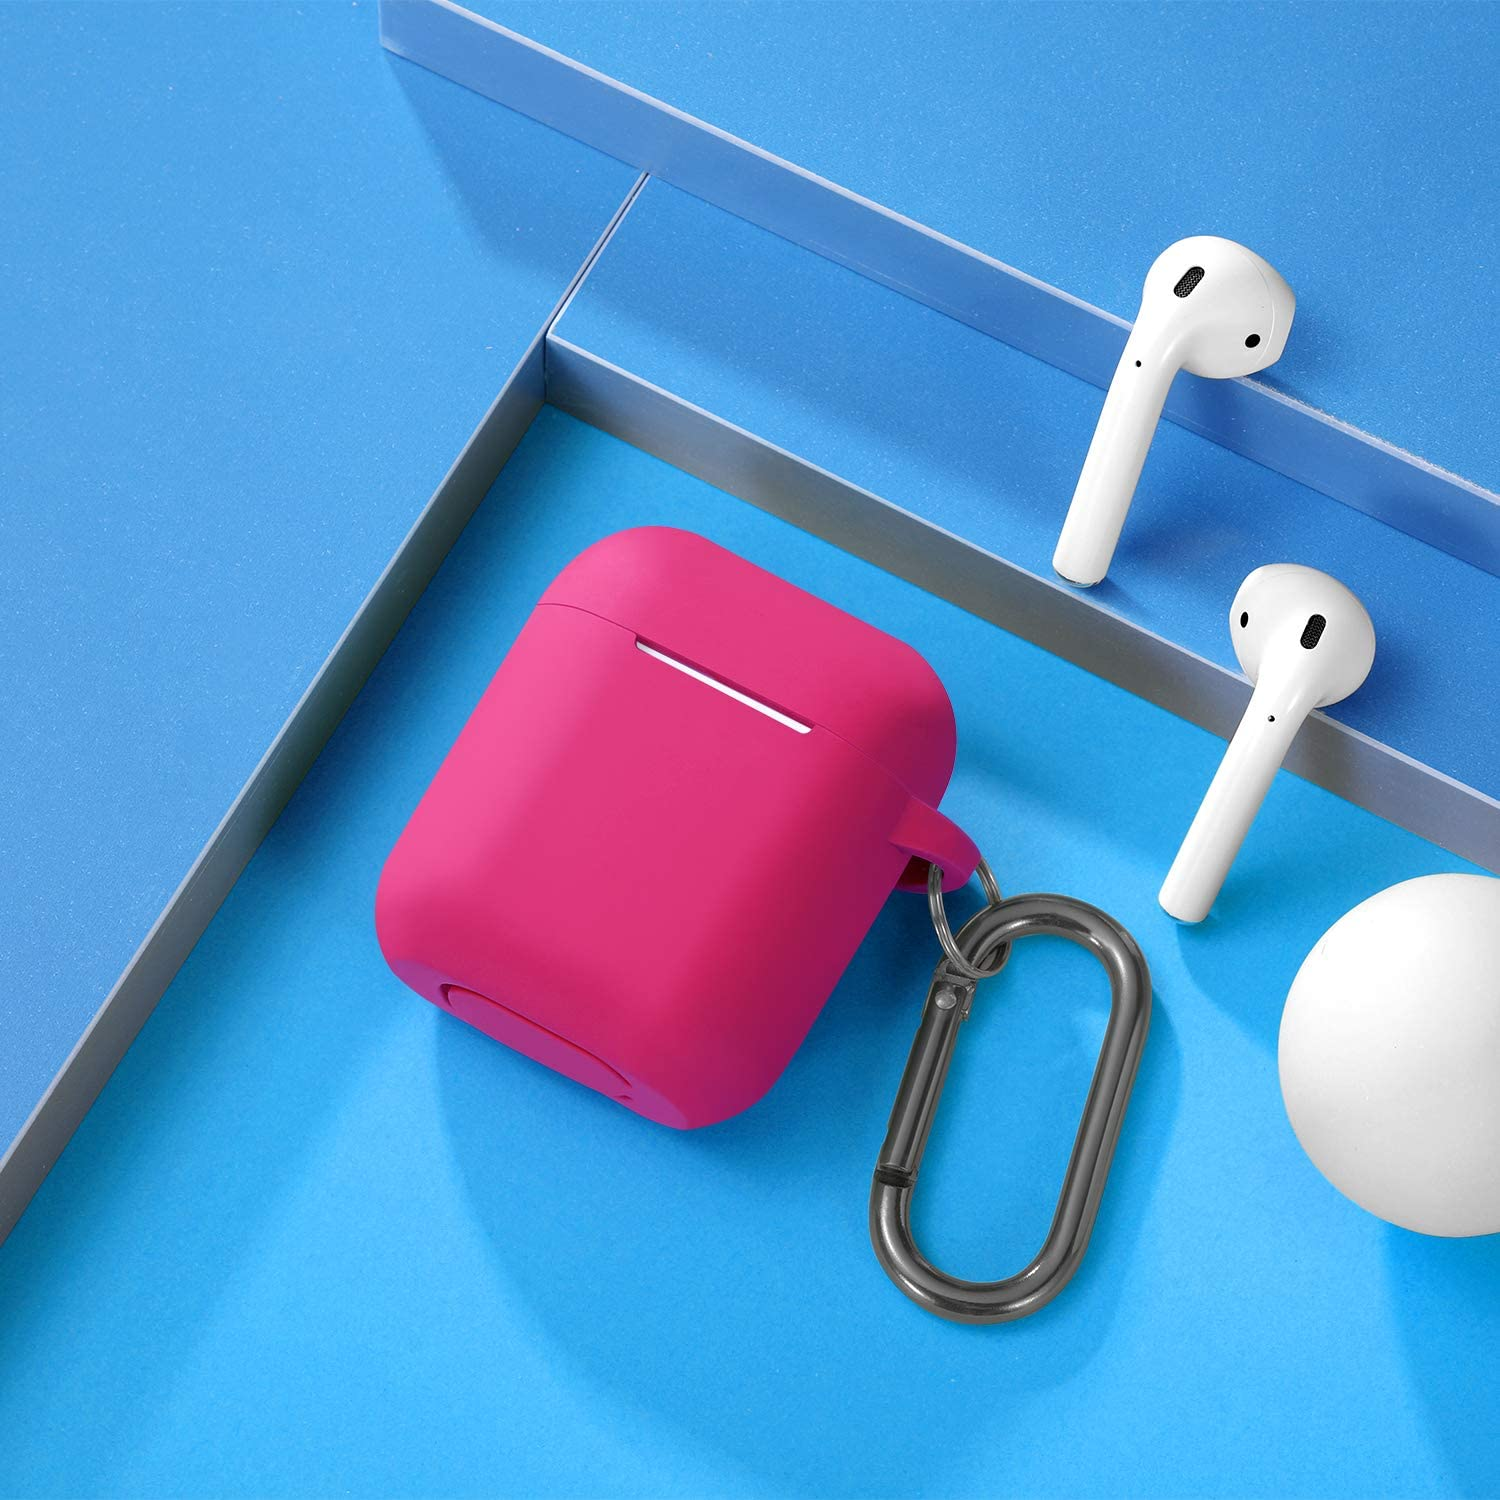 Silicone Shockproof Protective Airpod Skin Cover Waterproof BlueGray Front LED Visible Maledan Compatible with Airpods Case 2 /& 1 Support Wireless Charging with Carabiner